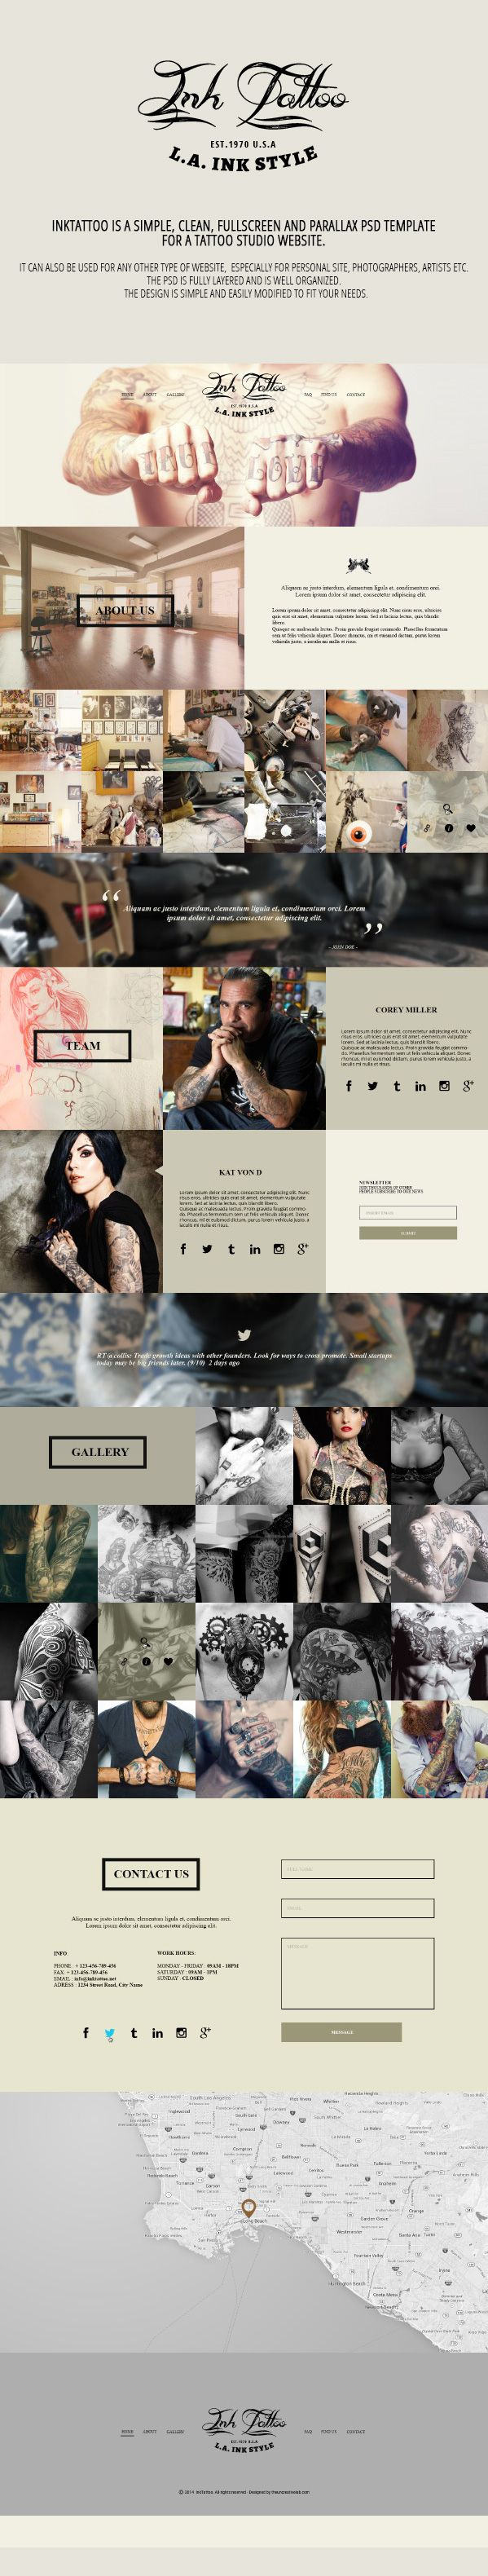 InkTattoo - Free .Psd One Page Template by michele cialone